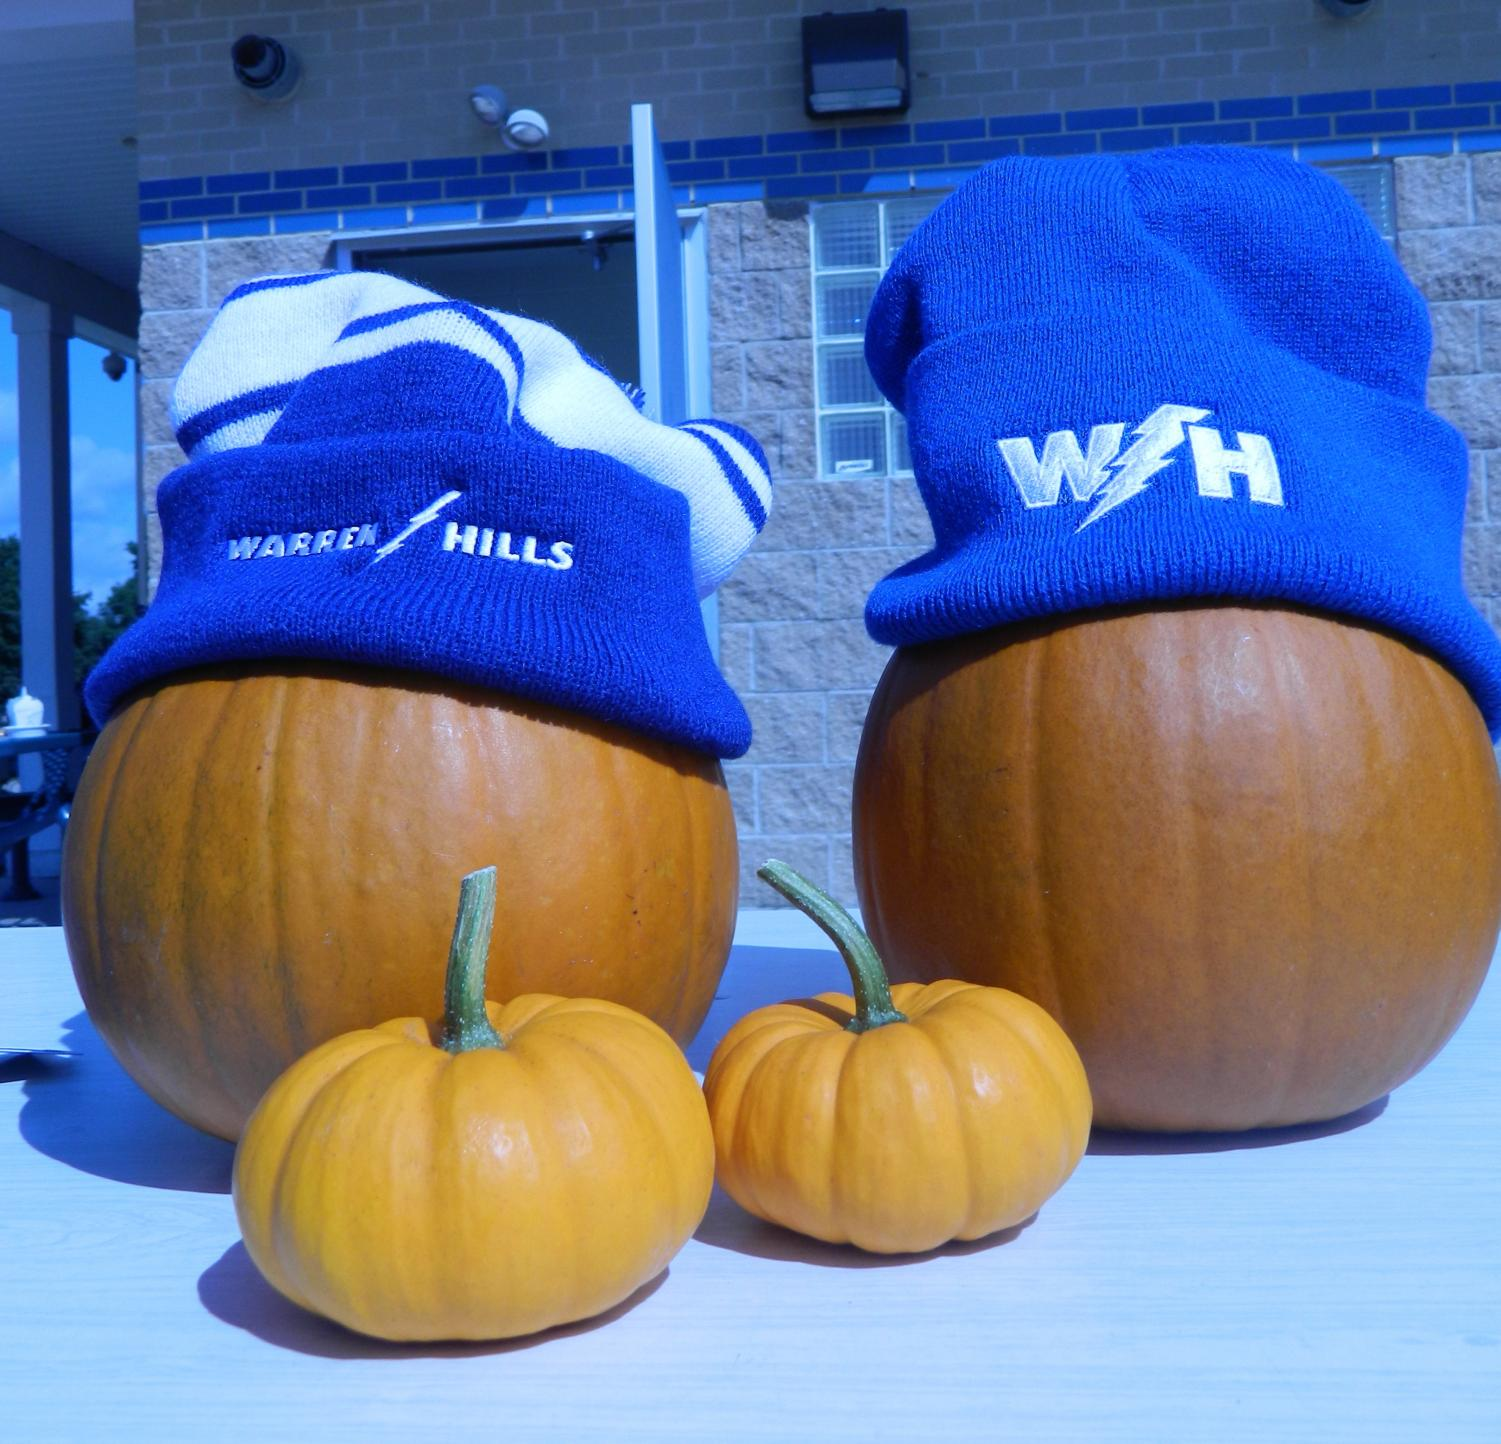 Pumpkins displayed beanies for sale. (Photo by Emily Deming and Hannah DeVoe)